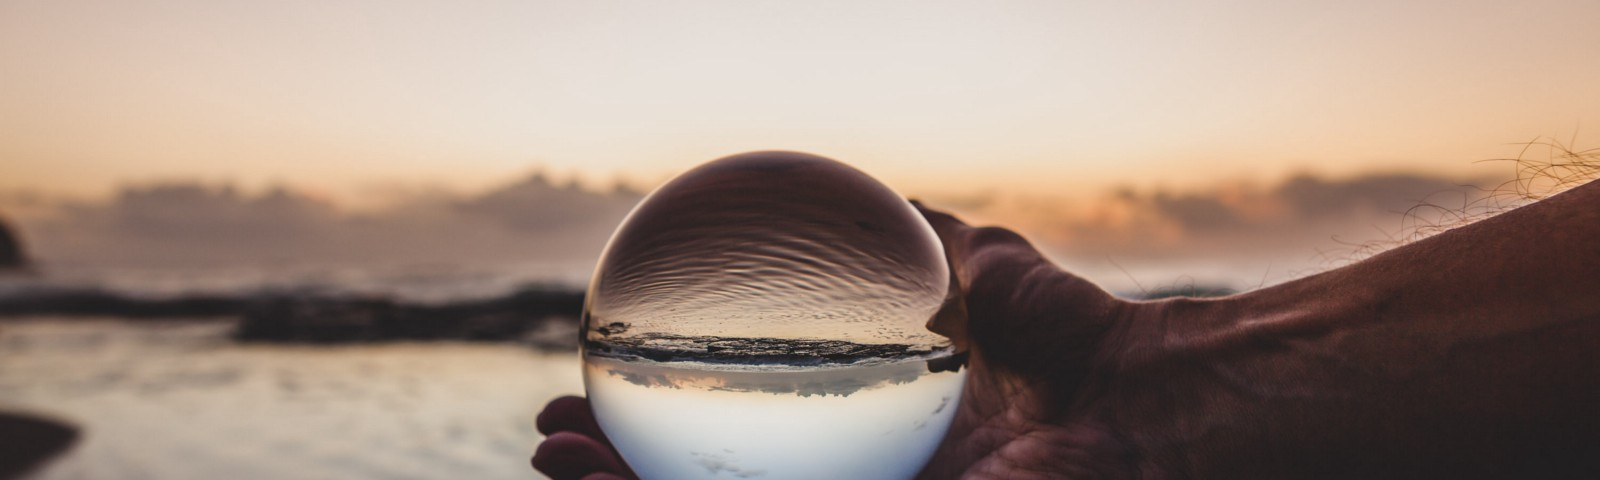 Photo by Photoholgic; photo of man holding crystal ball posted on James Goydos MD's article re prediction of COVID-19 outcomes